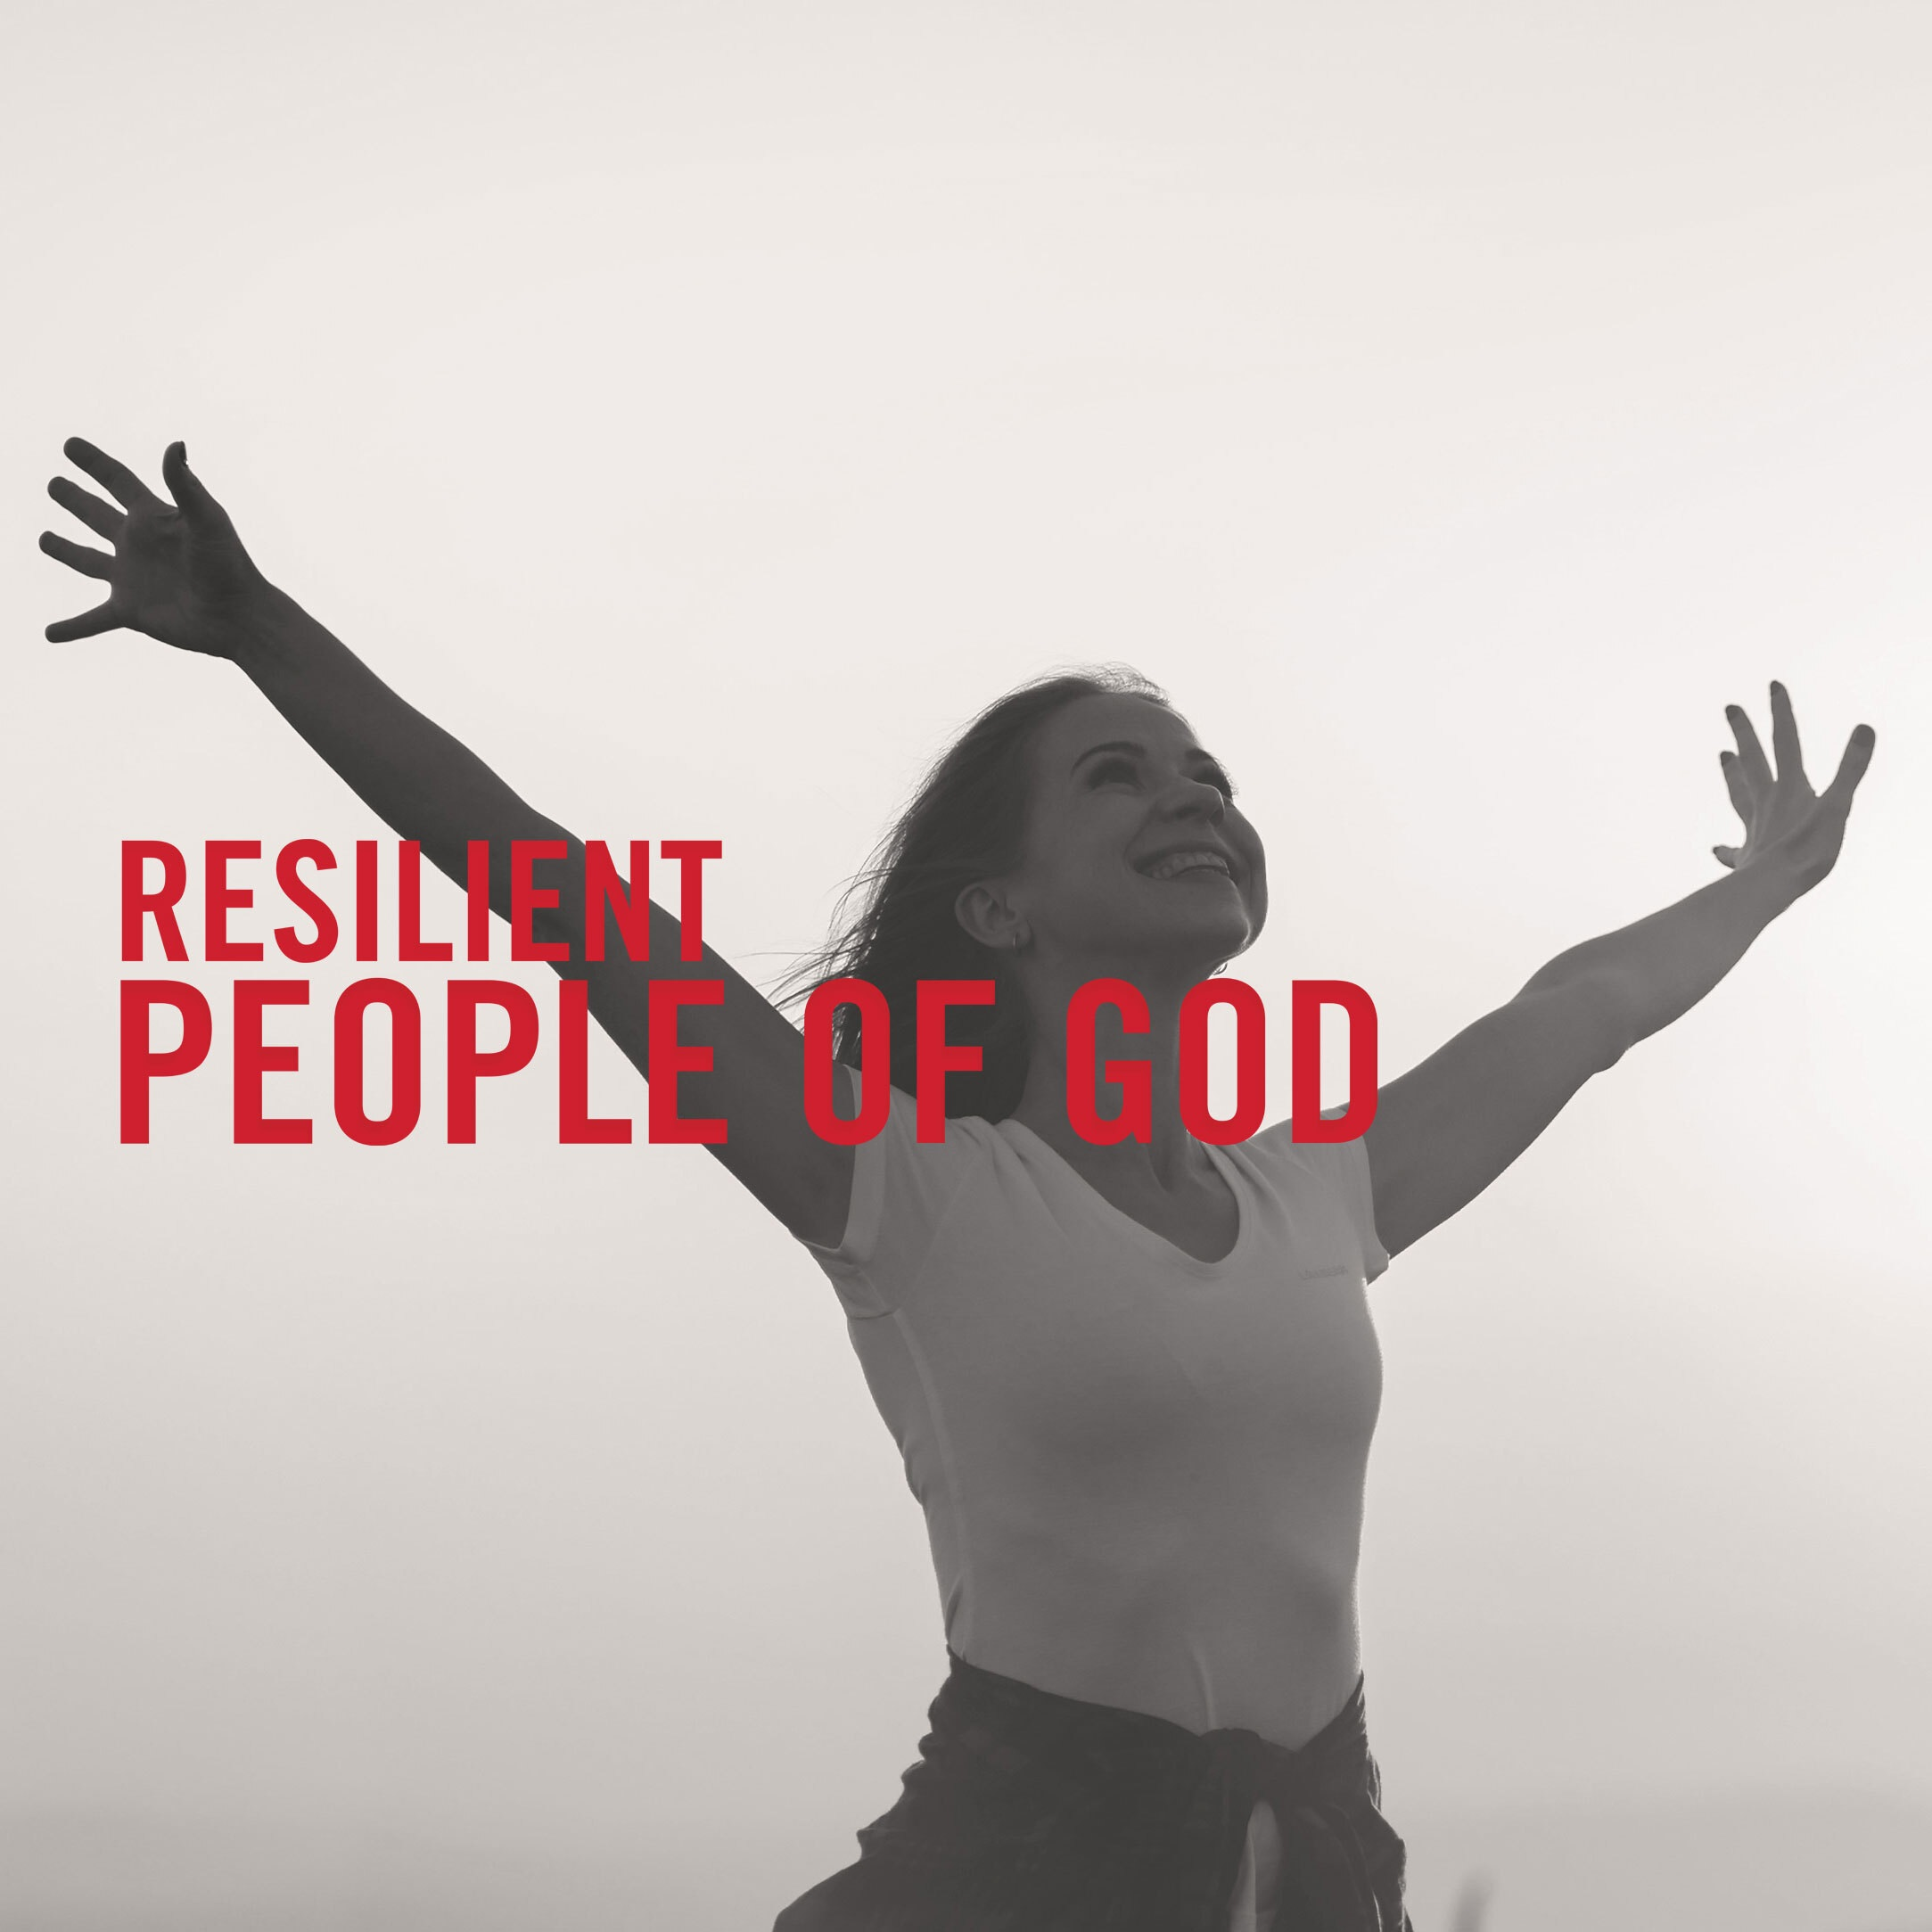 The United Methodist People of God are resilient.